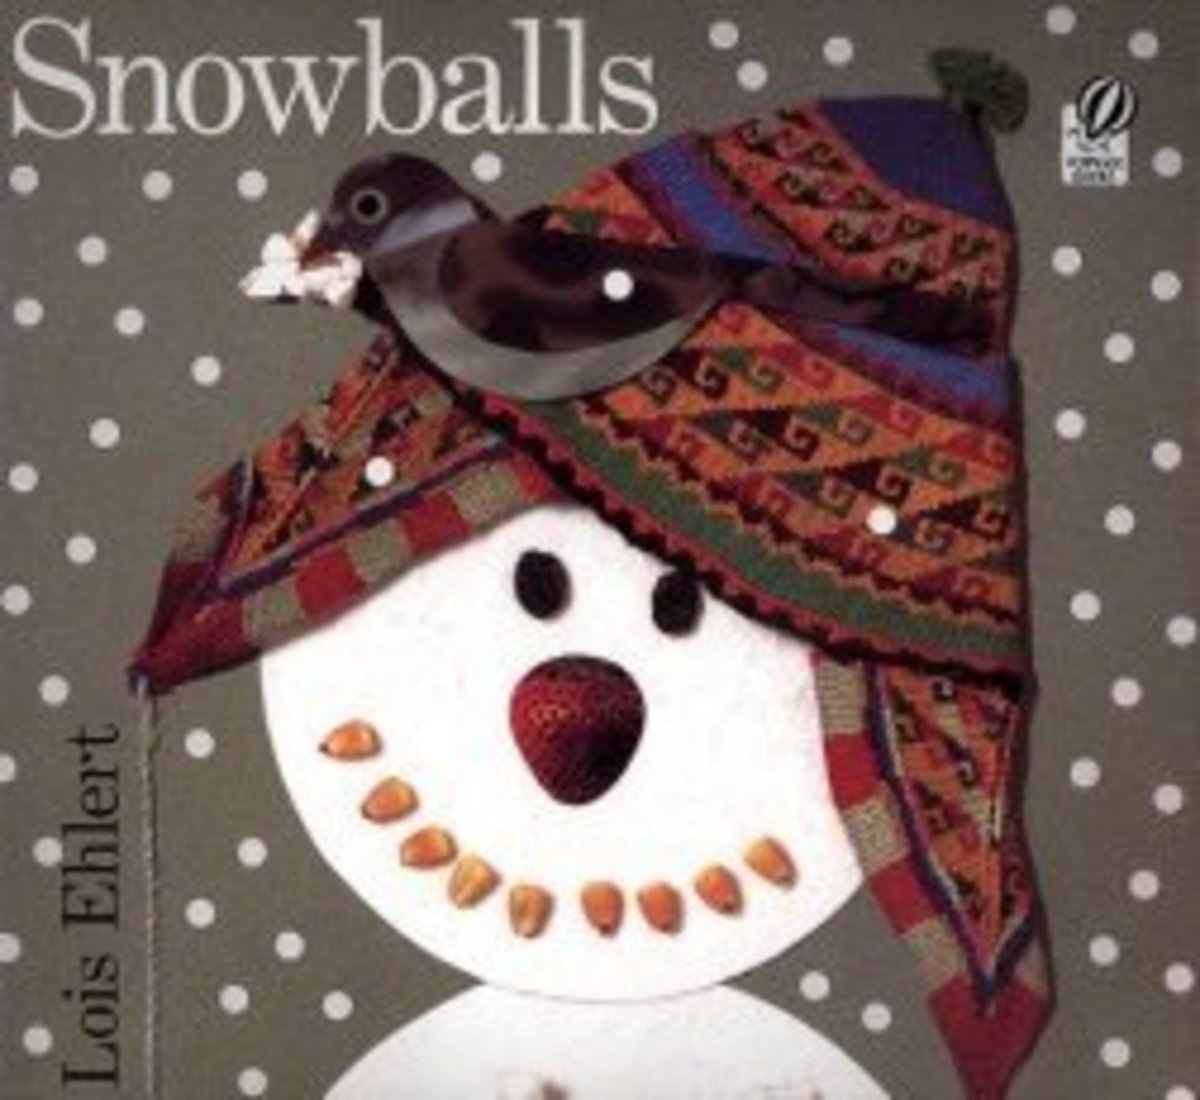 Snowballs by Artist/Writer Lois Ehlert is a classic winter collage storybook with a simple storyline and lots of fun collage pictures made from quirky objects.